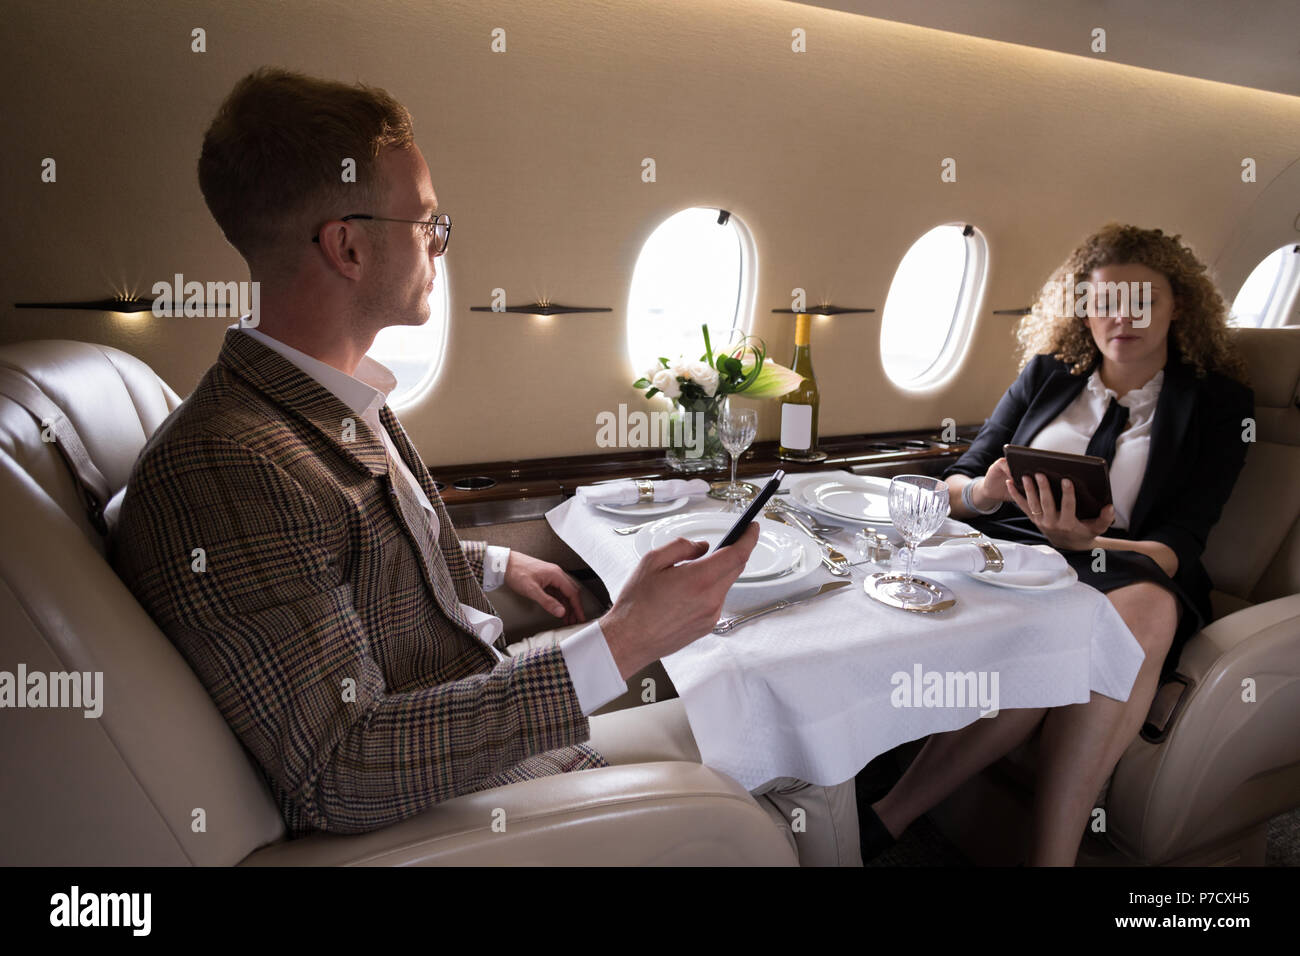 Businesspeople using mobile phone and digital tablet - Stock Image